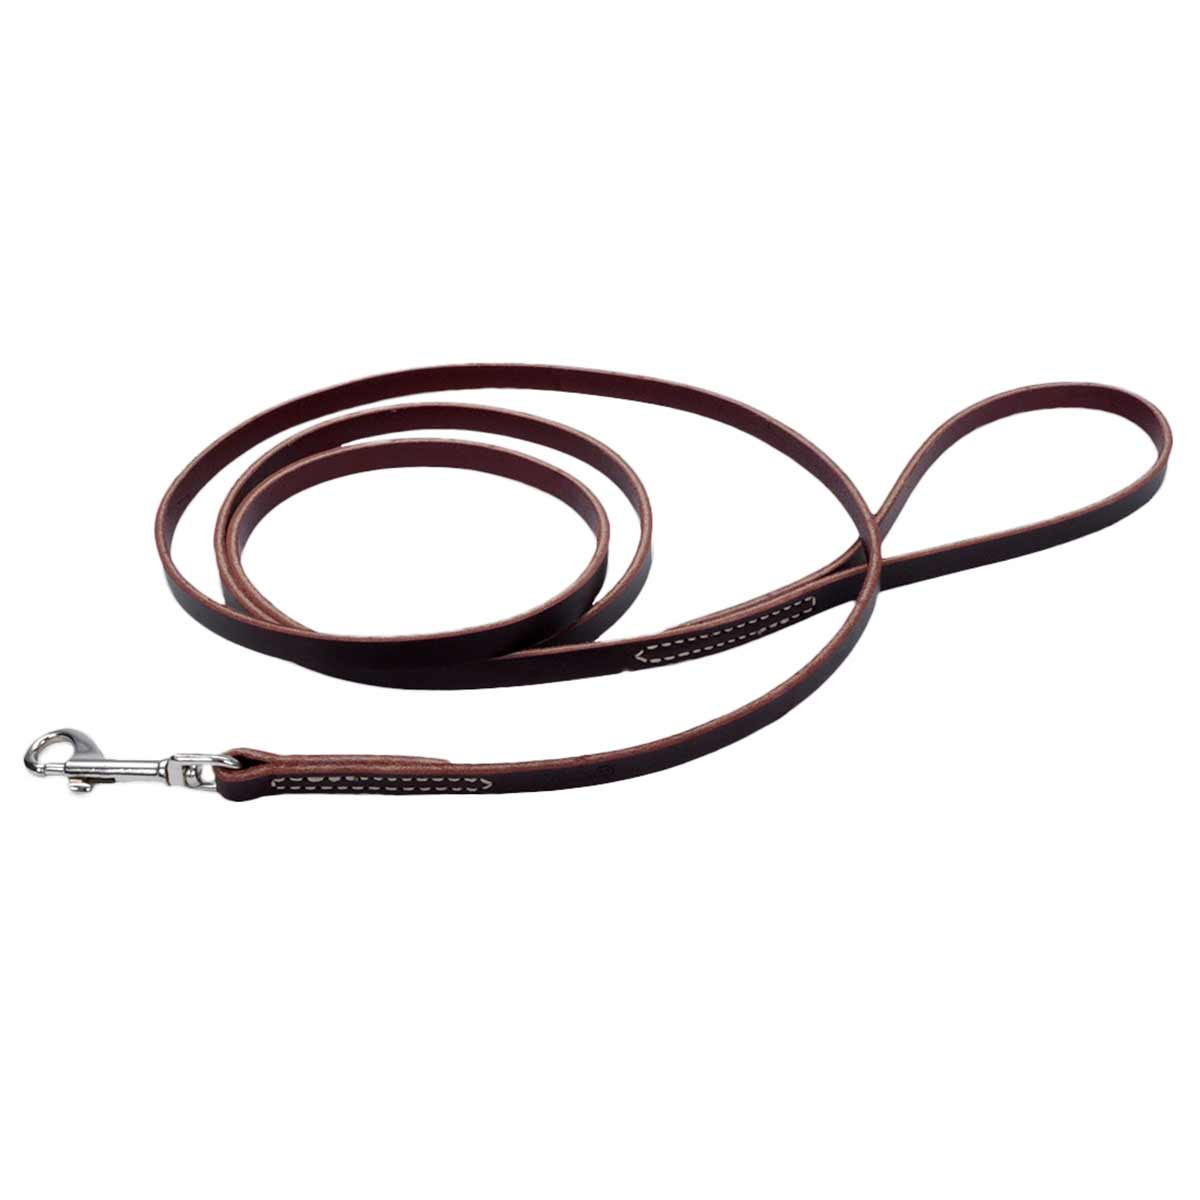 Brown Flat Latigo Leather Training Lead for Dogs - 3/8 inch by 6 feet